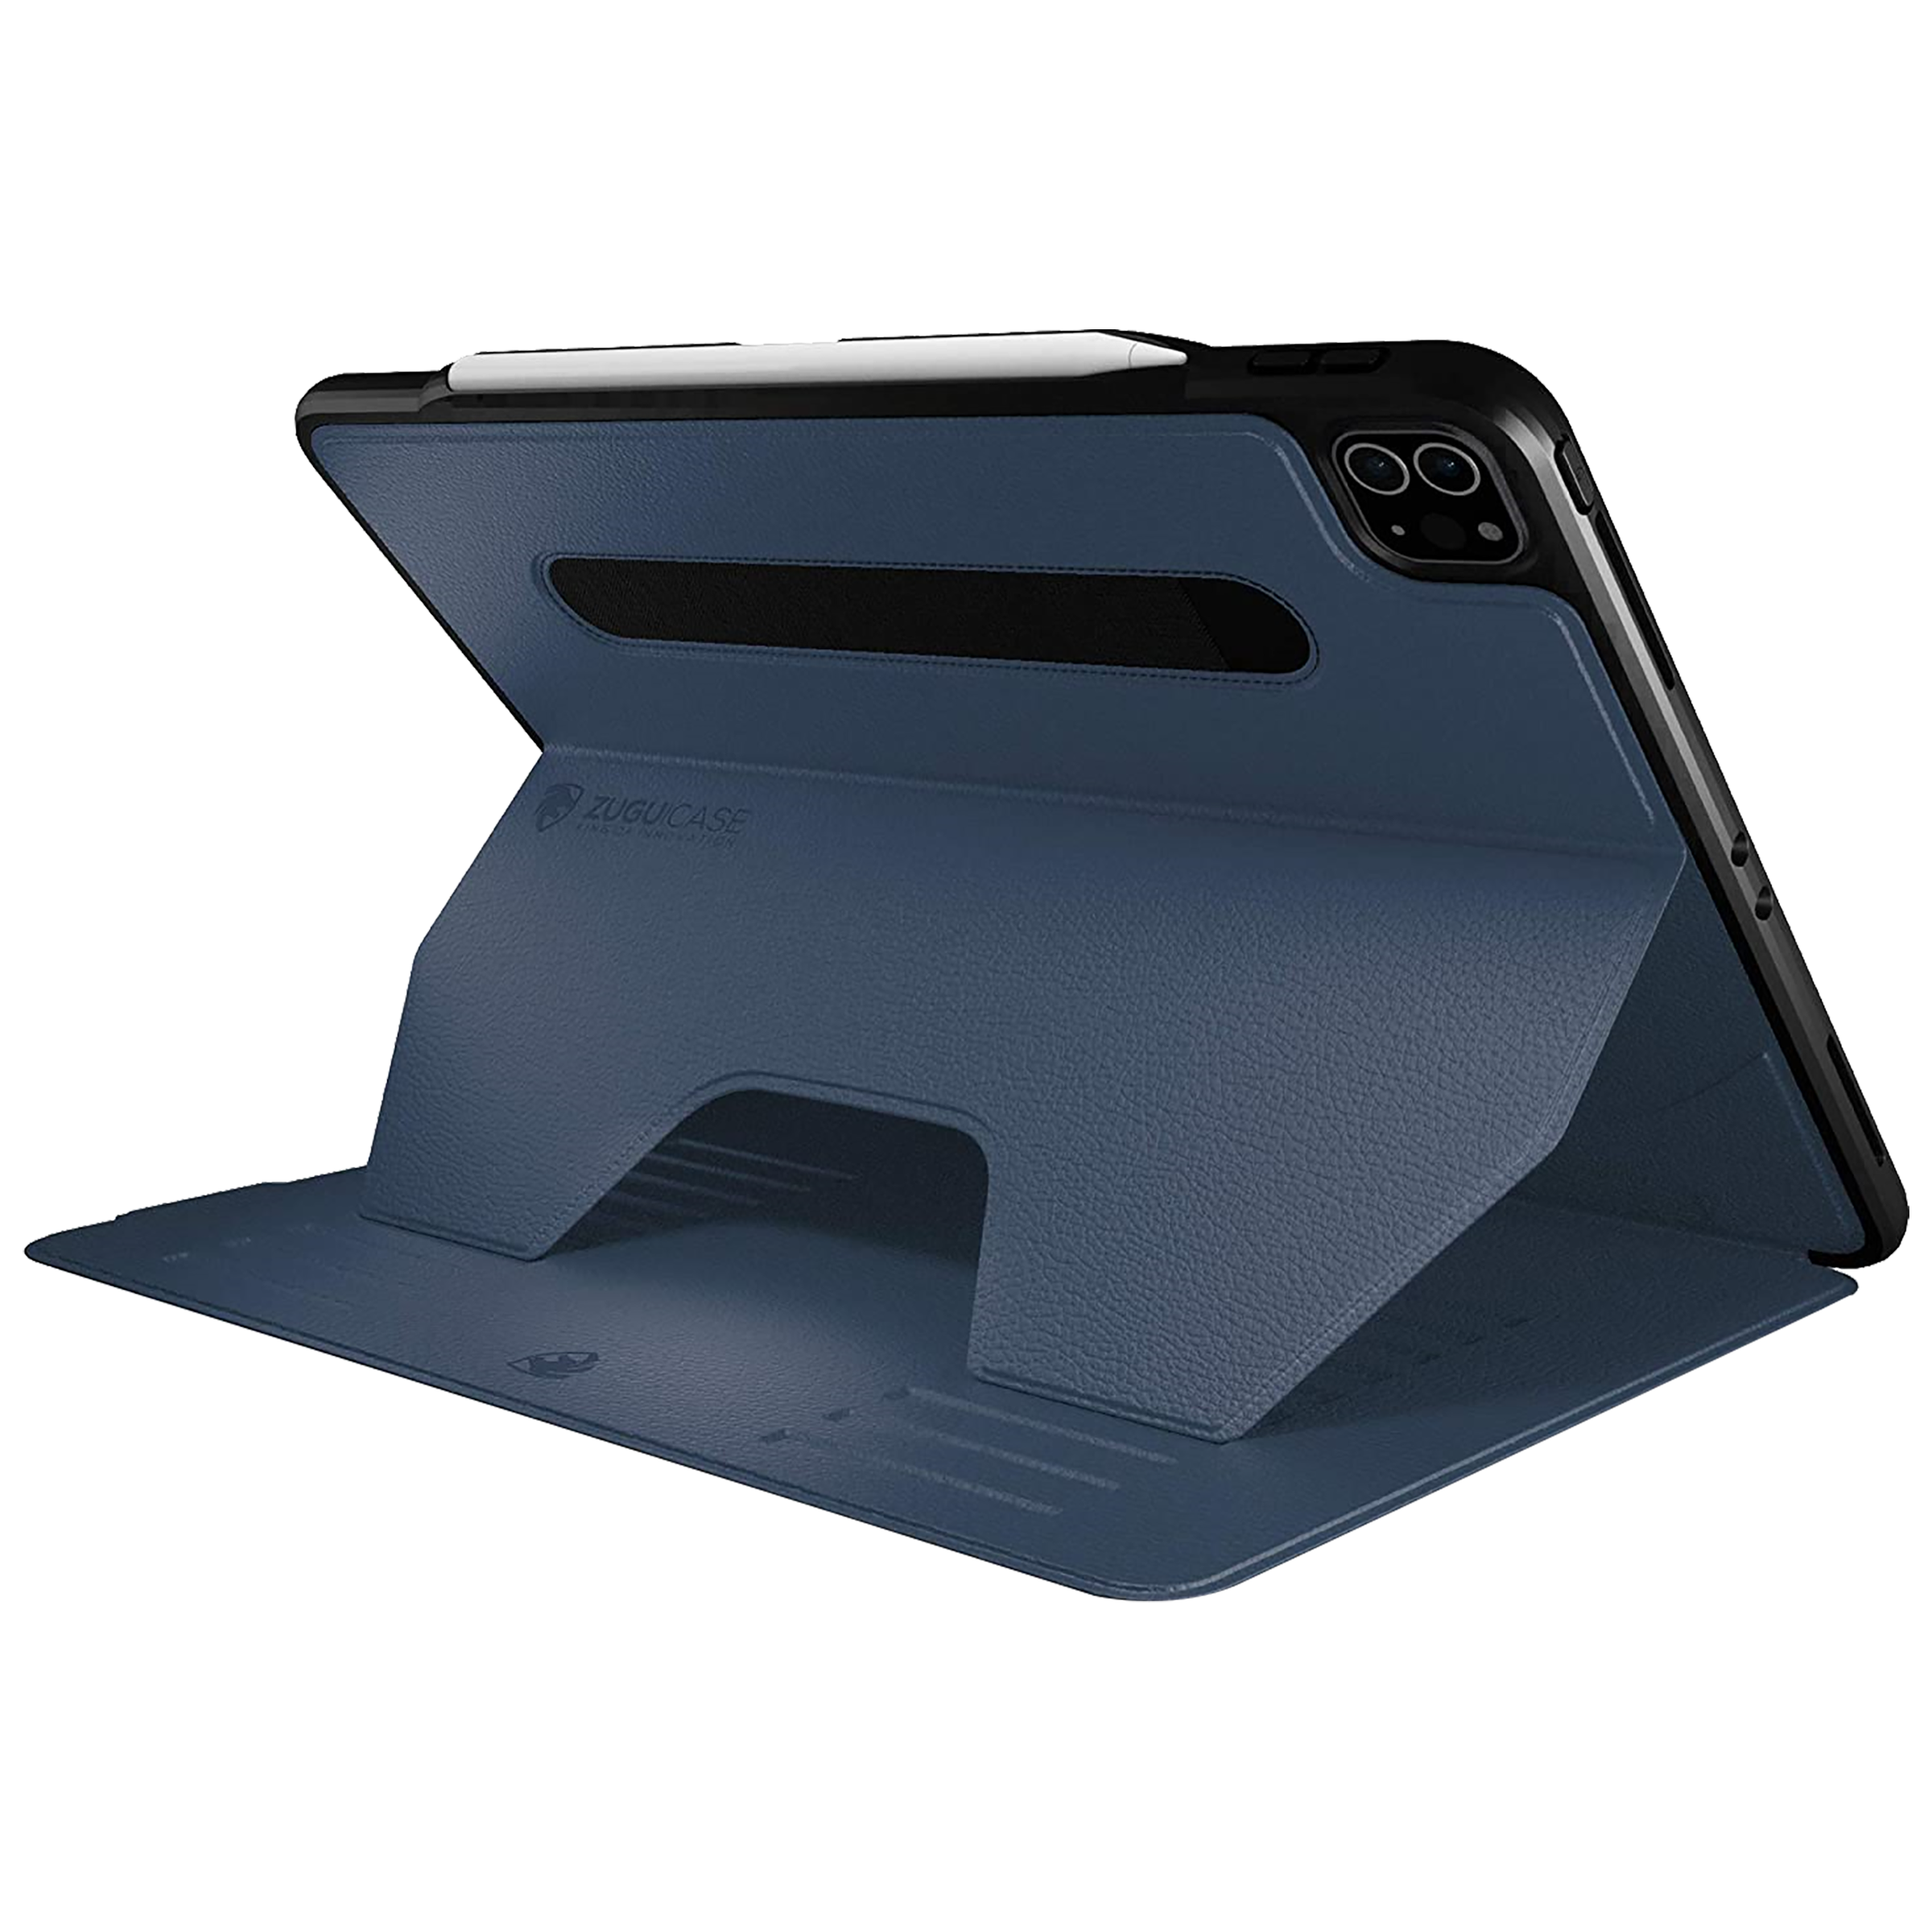 Zugu Alpha Polycarbonate Back Case with Stand For iPad Pro 12.9 (4th Gen) (Soft Microfiber Interior, ZG-20-129NB, Navy Blue)_3